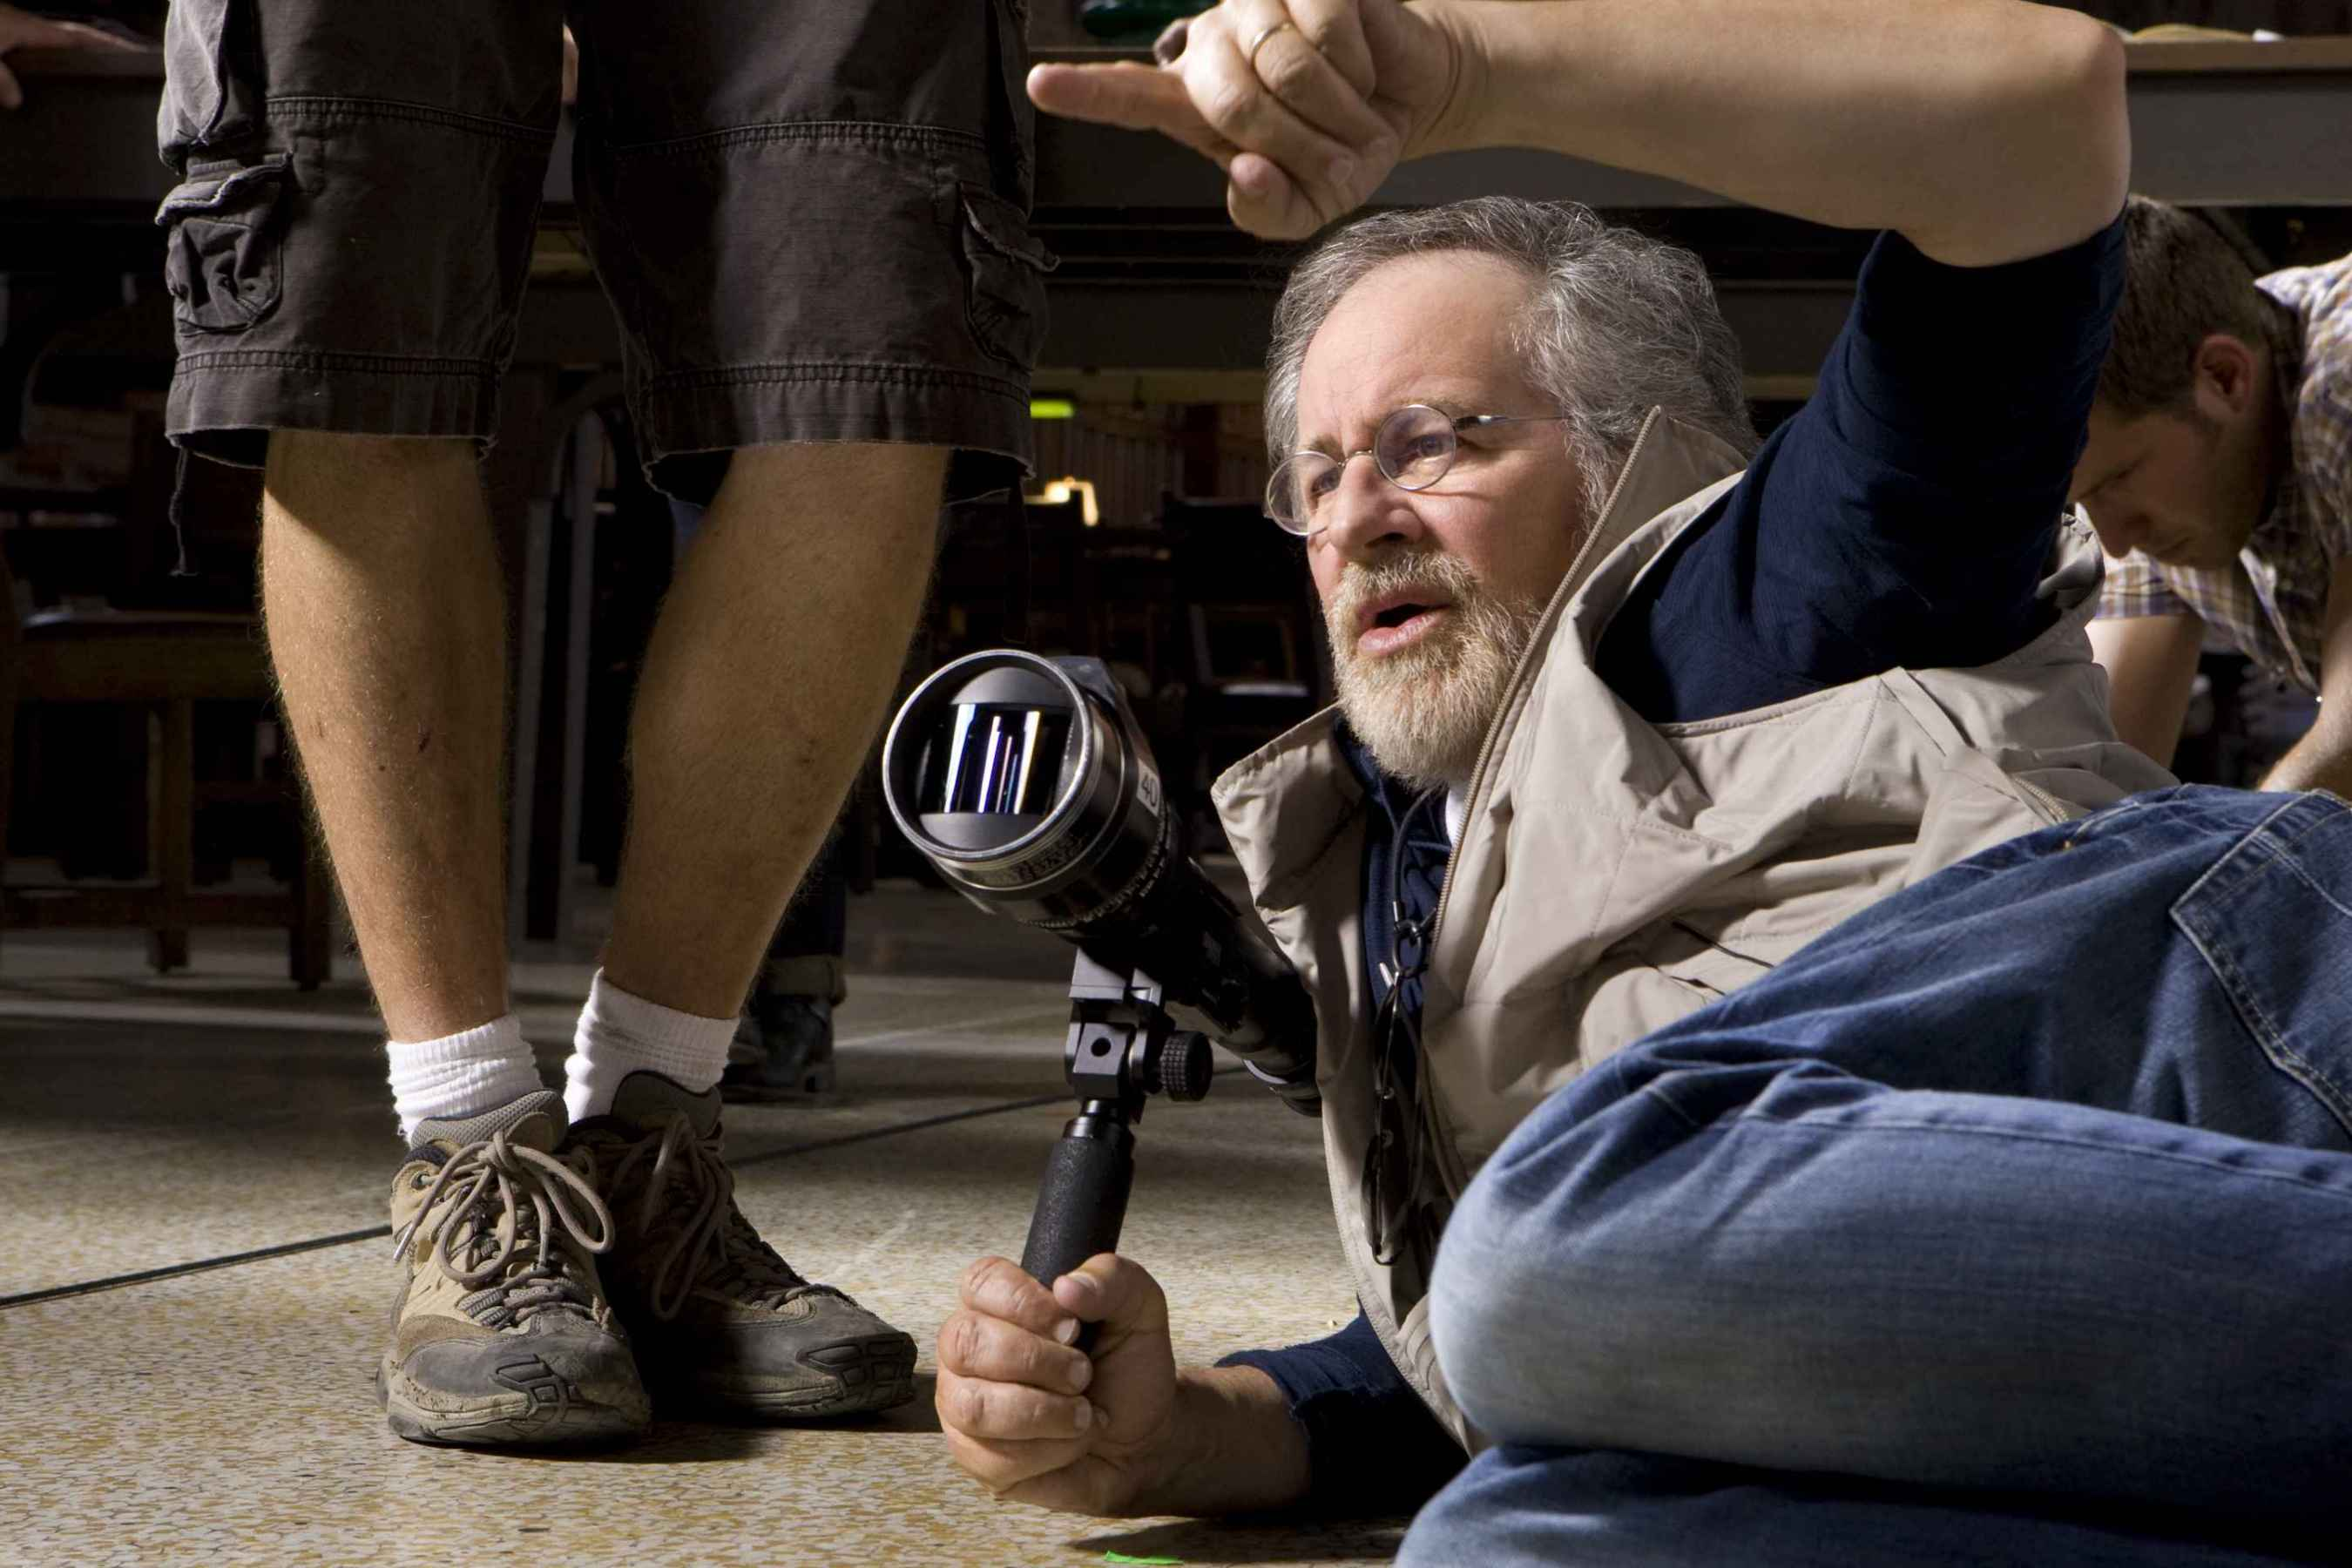 http://lounge.obviousmag.org/horizonte_distante/2015/03/12/steven-spielberg1.jpg